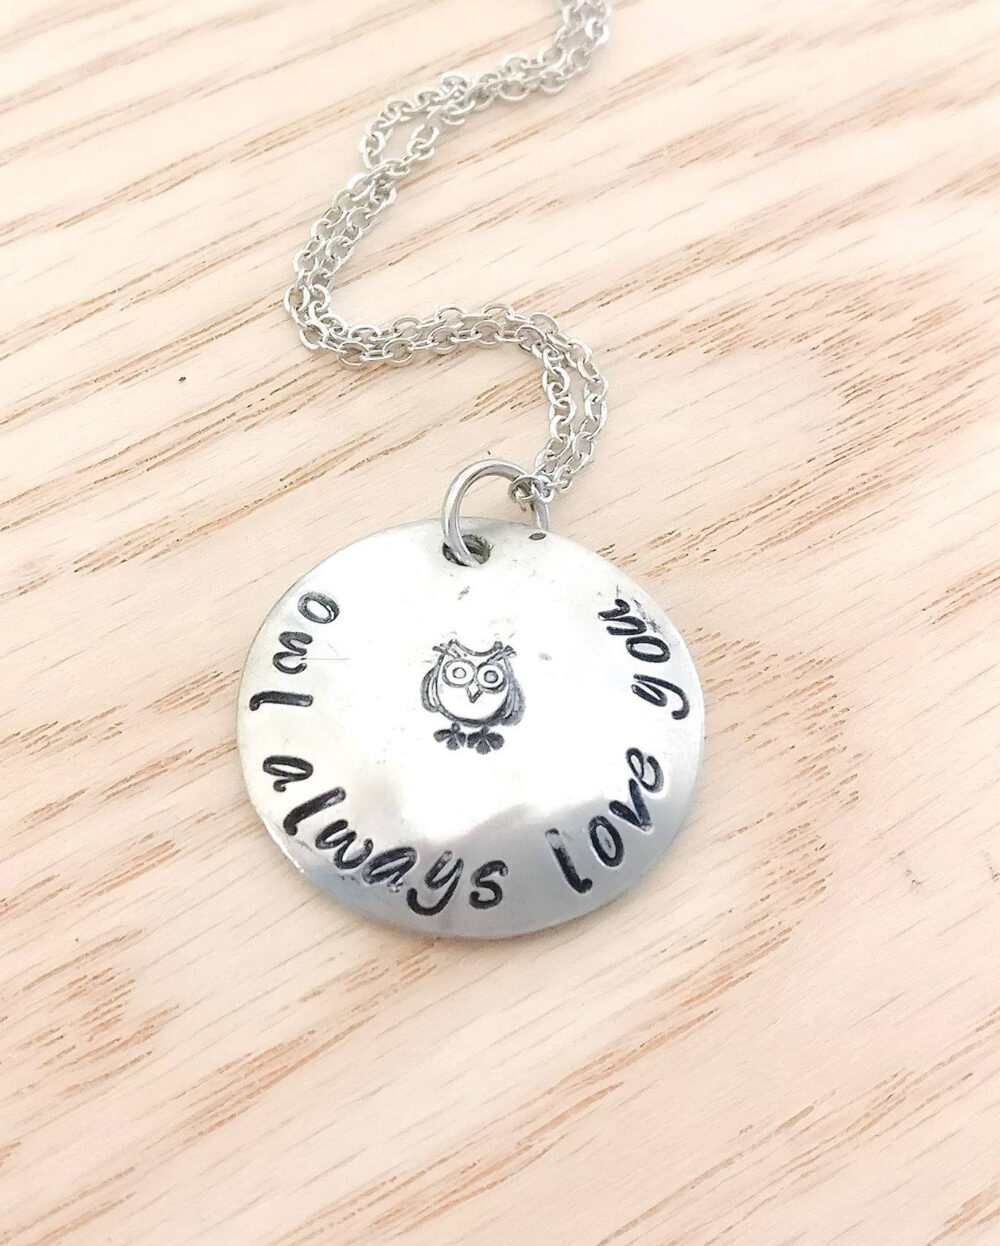 Owl Always Love You Necklace - Mother's Day Gift, Owl Jewelry, Necklace, Mother Daughter Gift For Mom